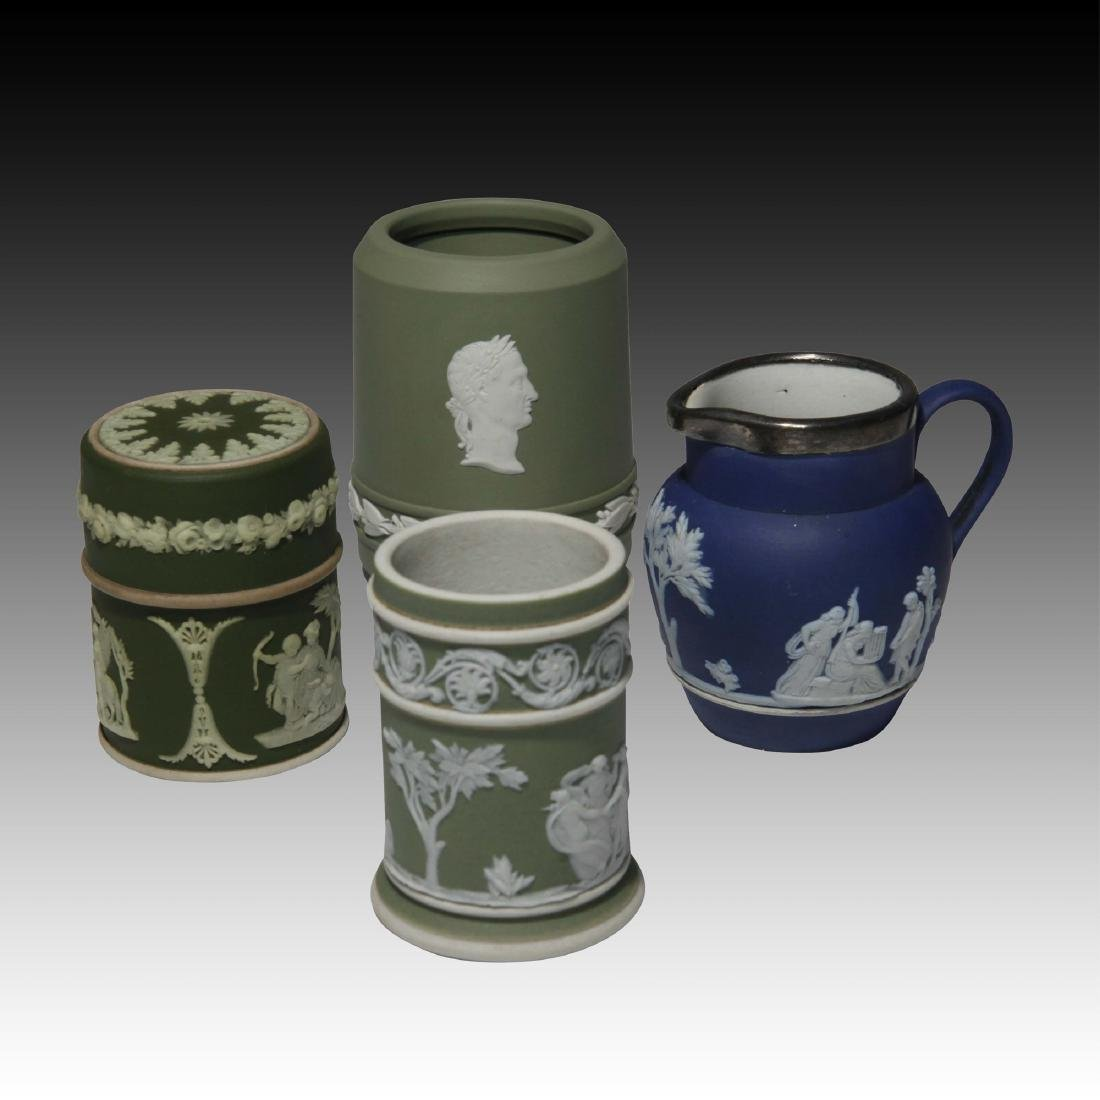 Group of 4 Wedgwood Jasperware containers